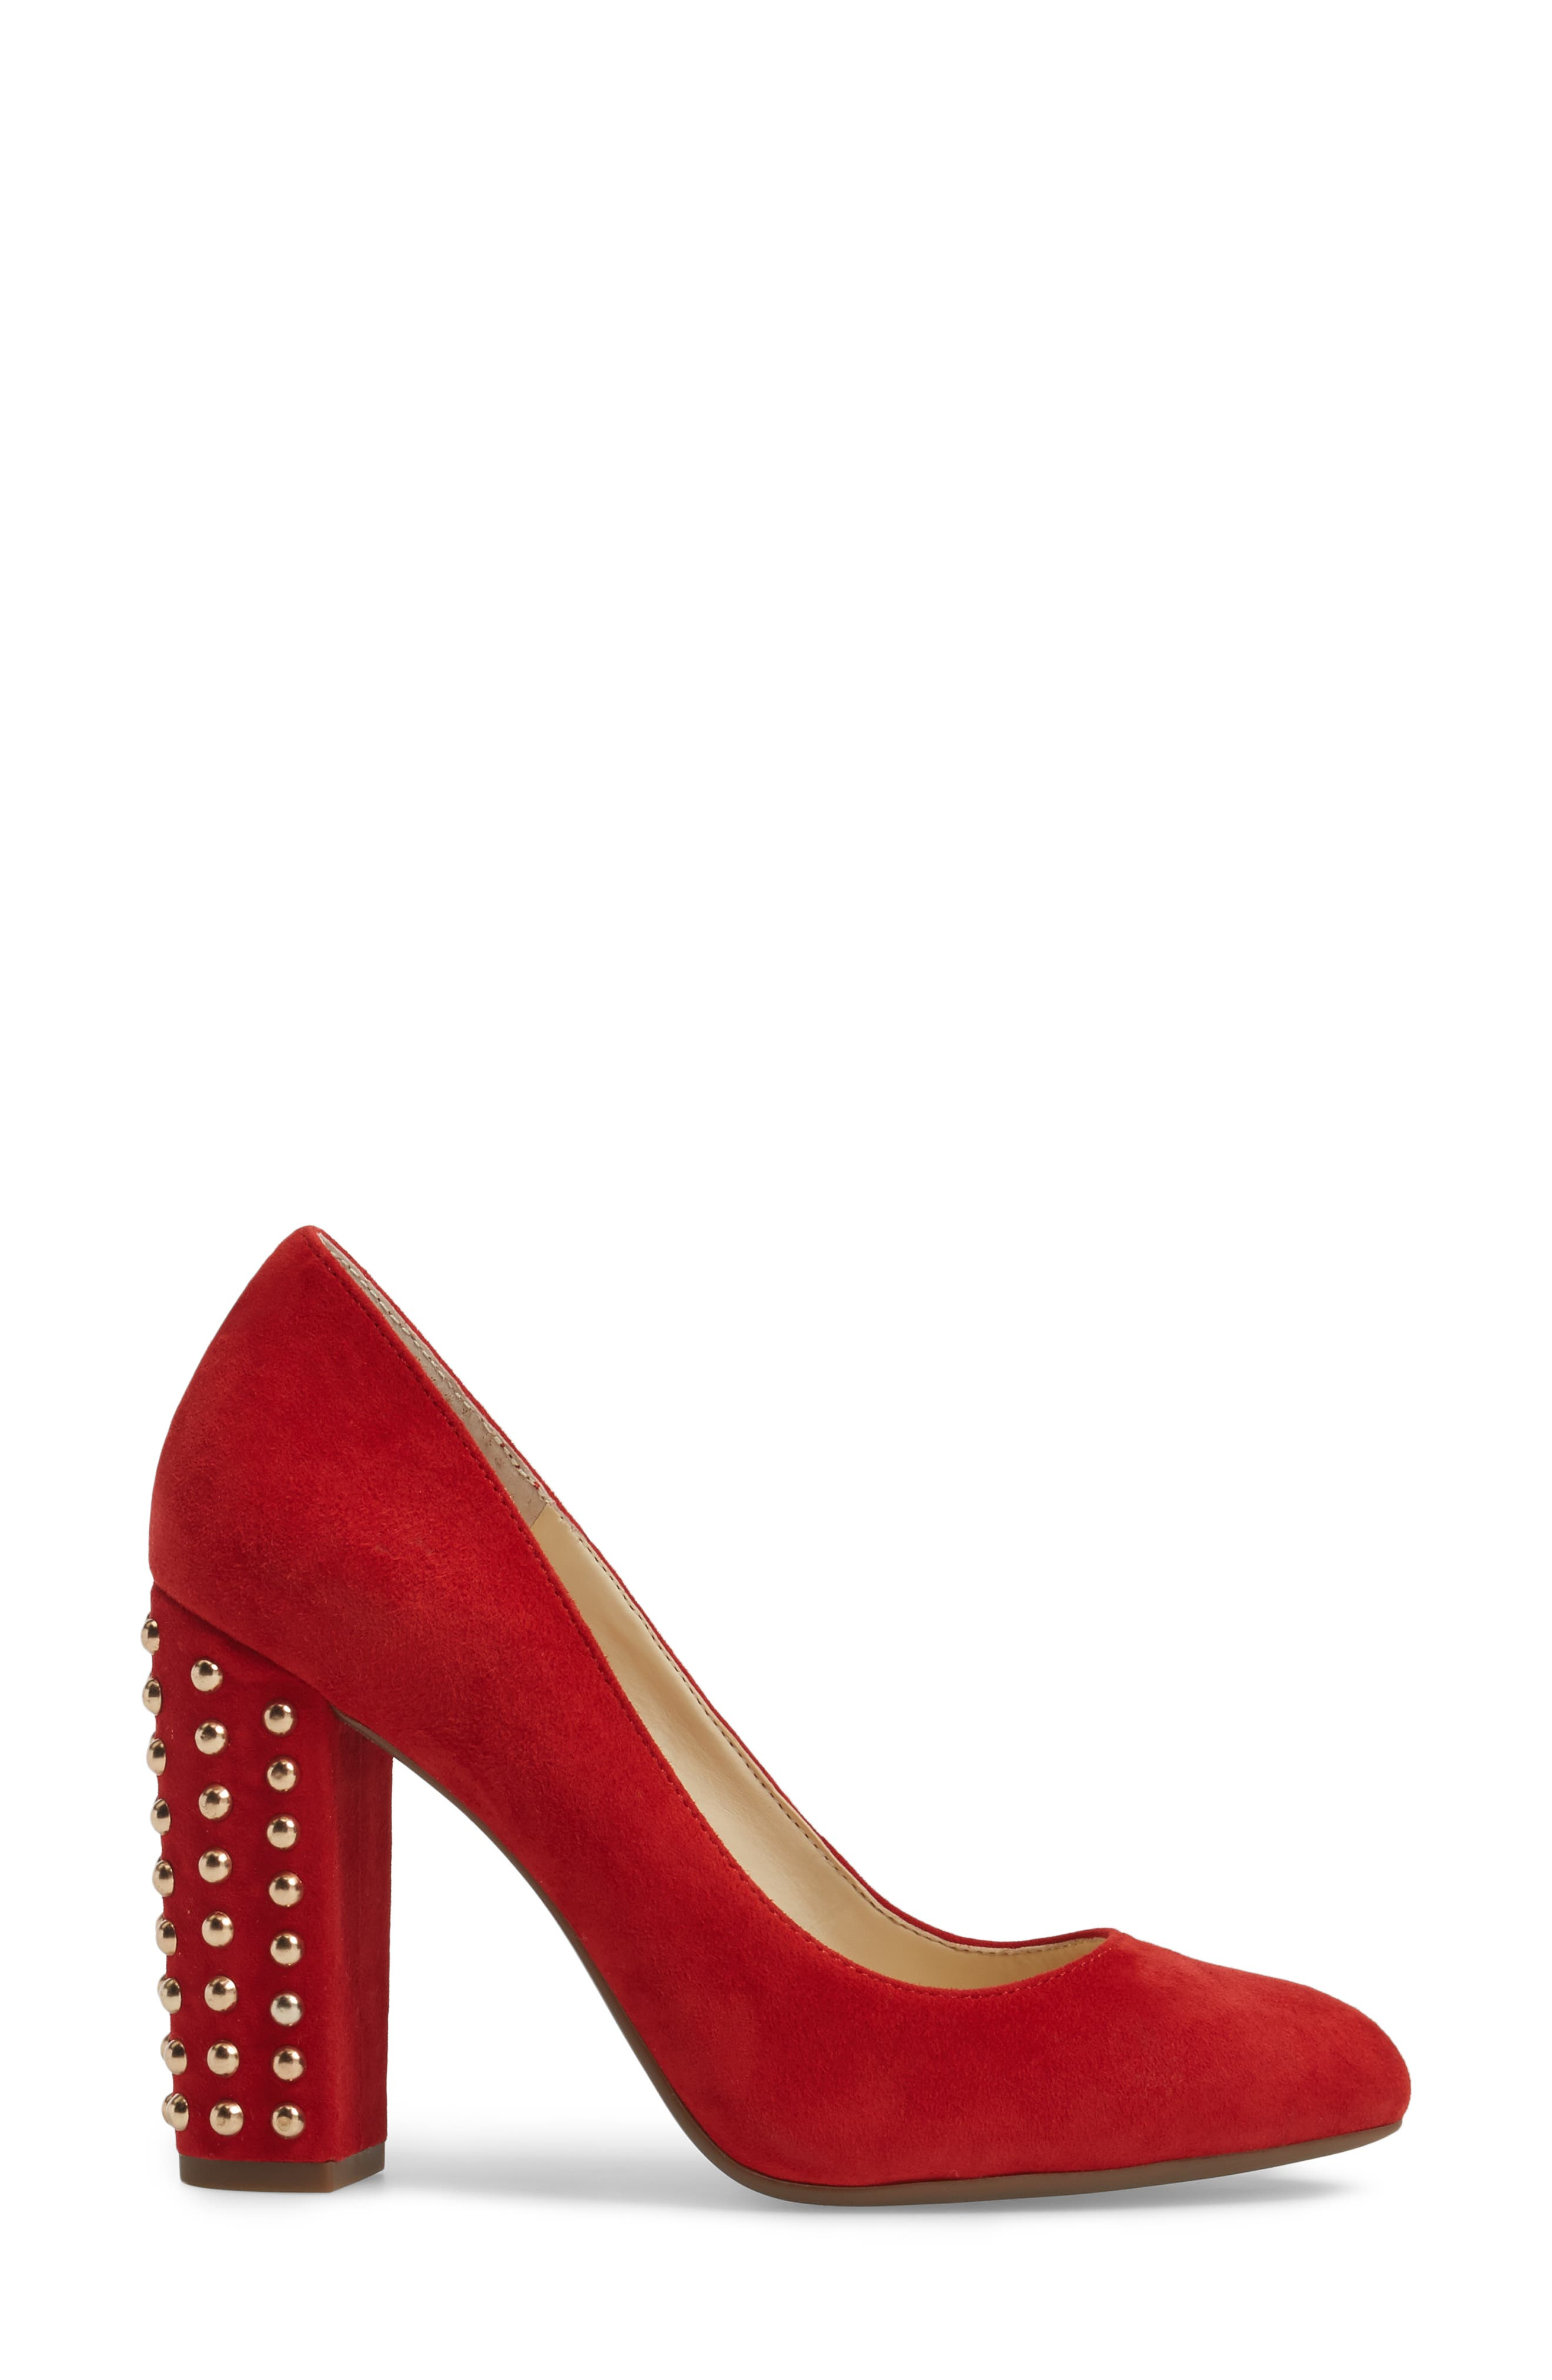 Bainer Block Heel Pump,                             Alternate thumbnail 3, color,                             Red Muse Suede